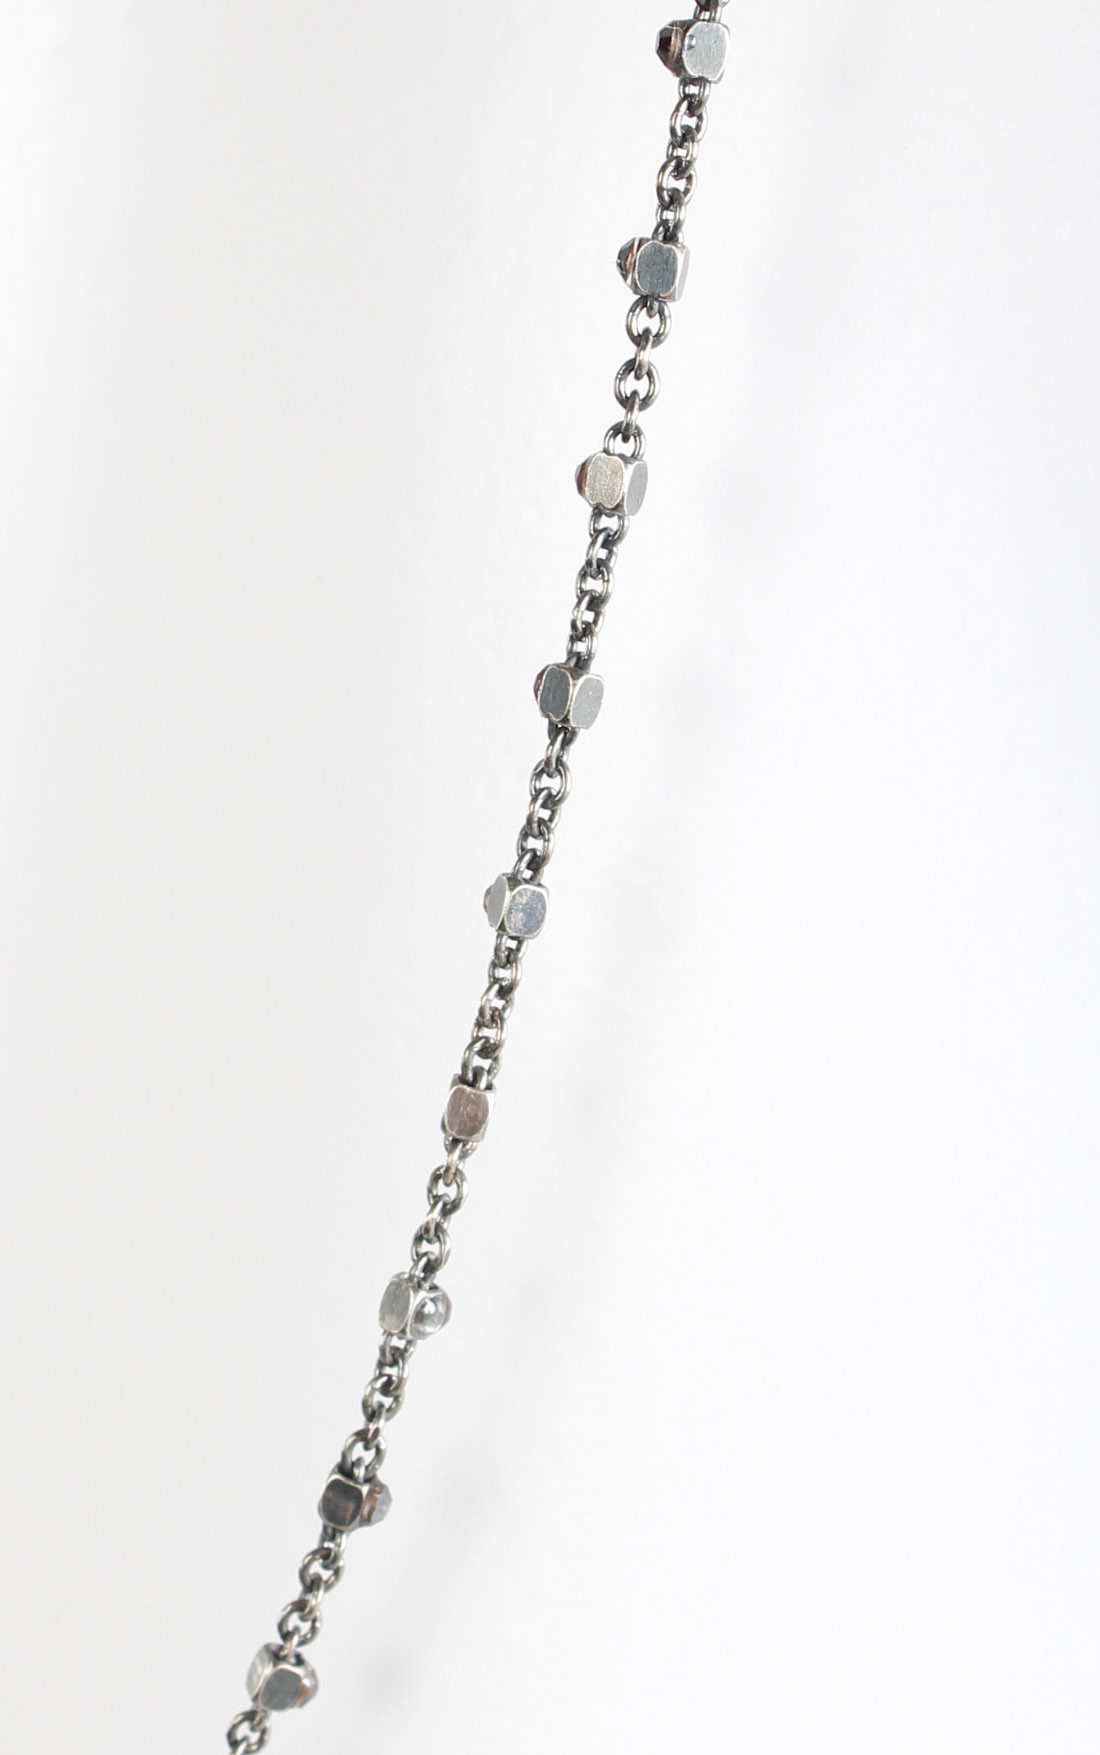 Goti - Thin Long Silver Necklace with Black Crystals (CN1030)